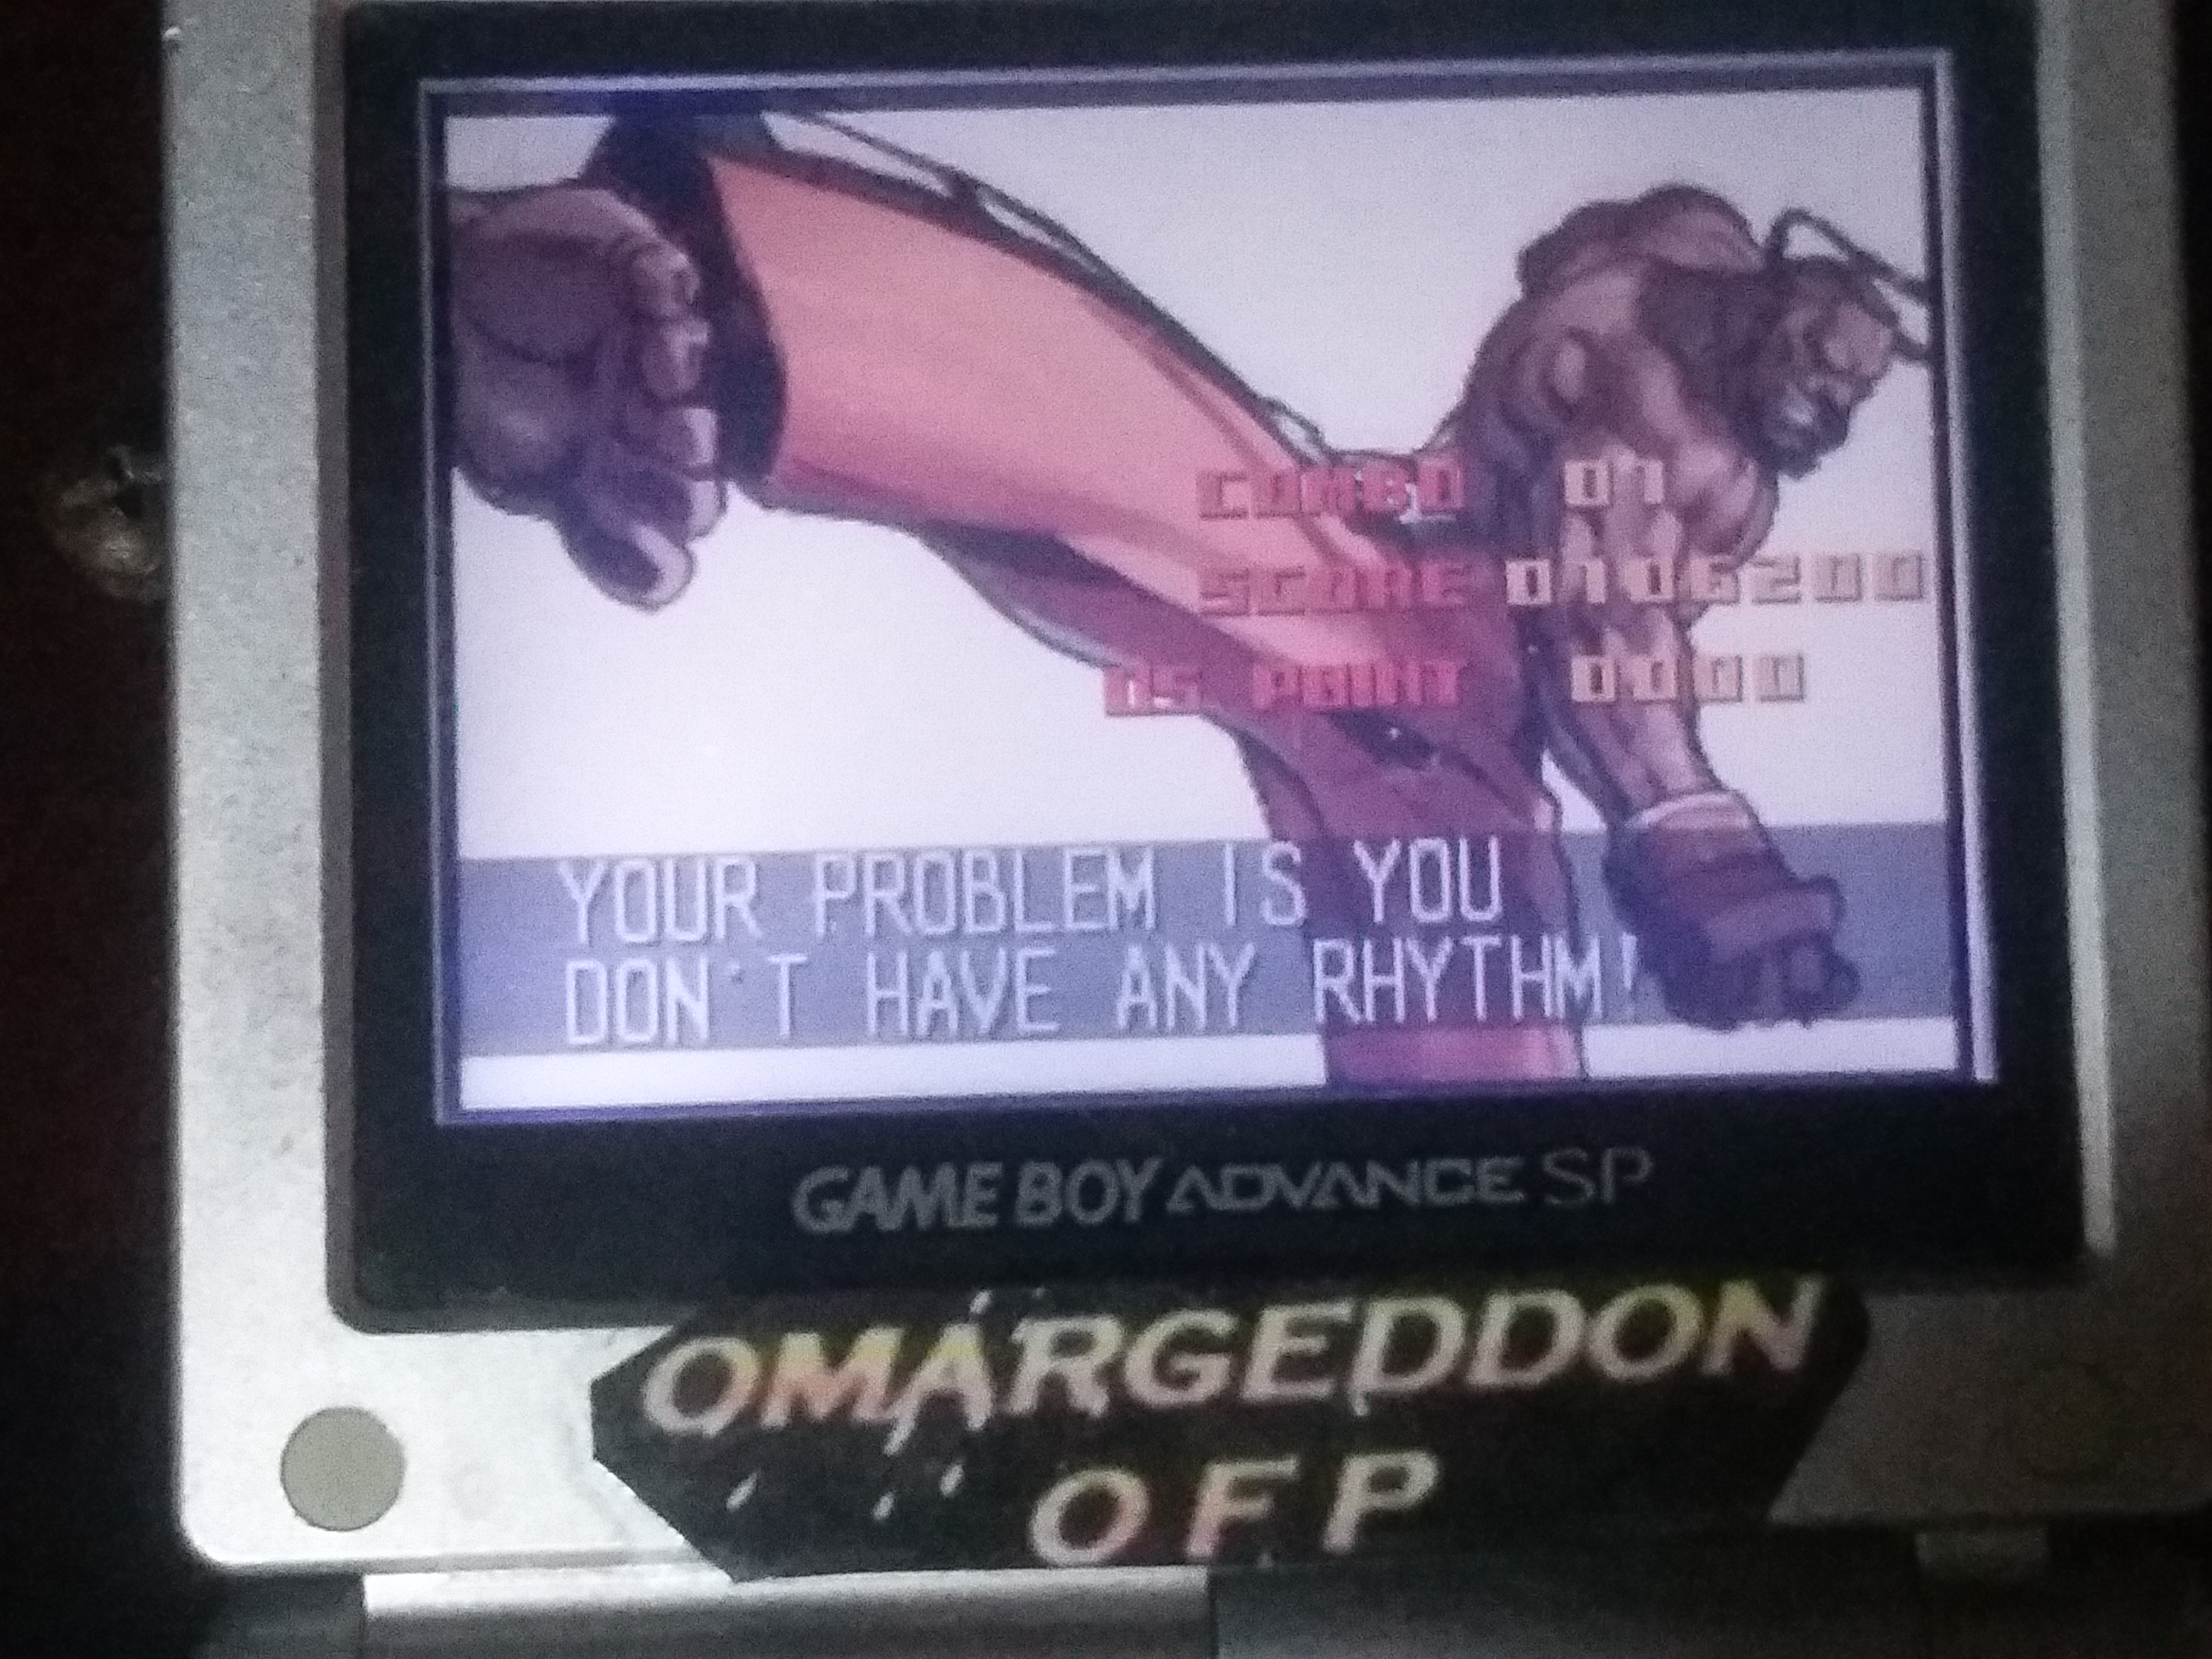 omargeddon: Super Street Fighter II Turbo Revival [Arcade Mode / Difficulty: Level 6] (GBA) 106,200 points on 2018-01-17 15:36:37